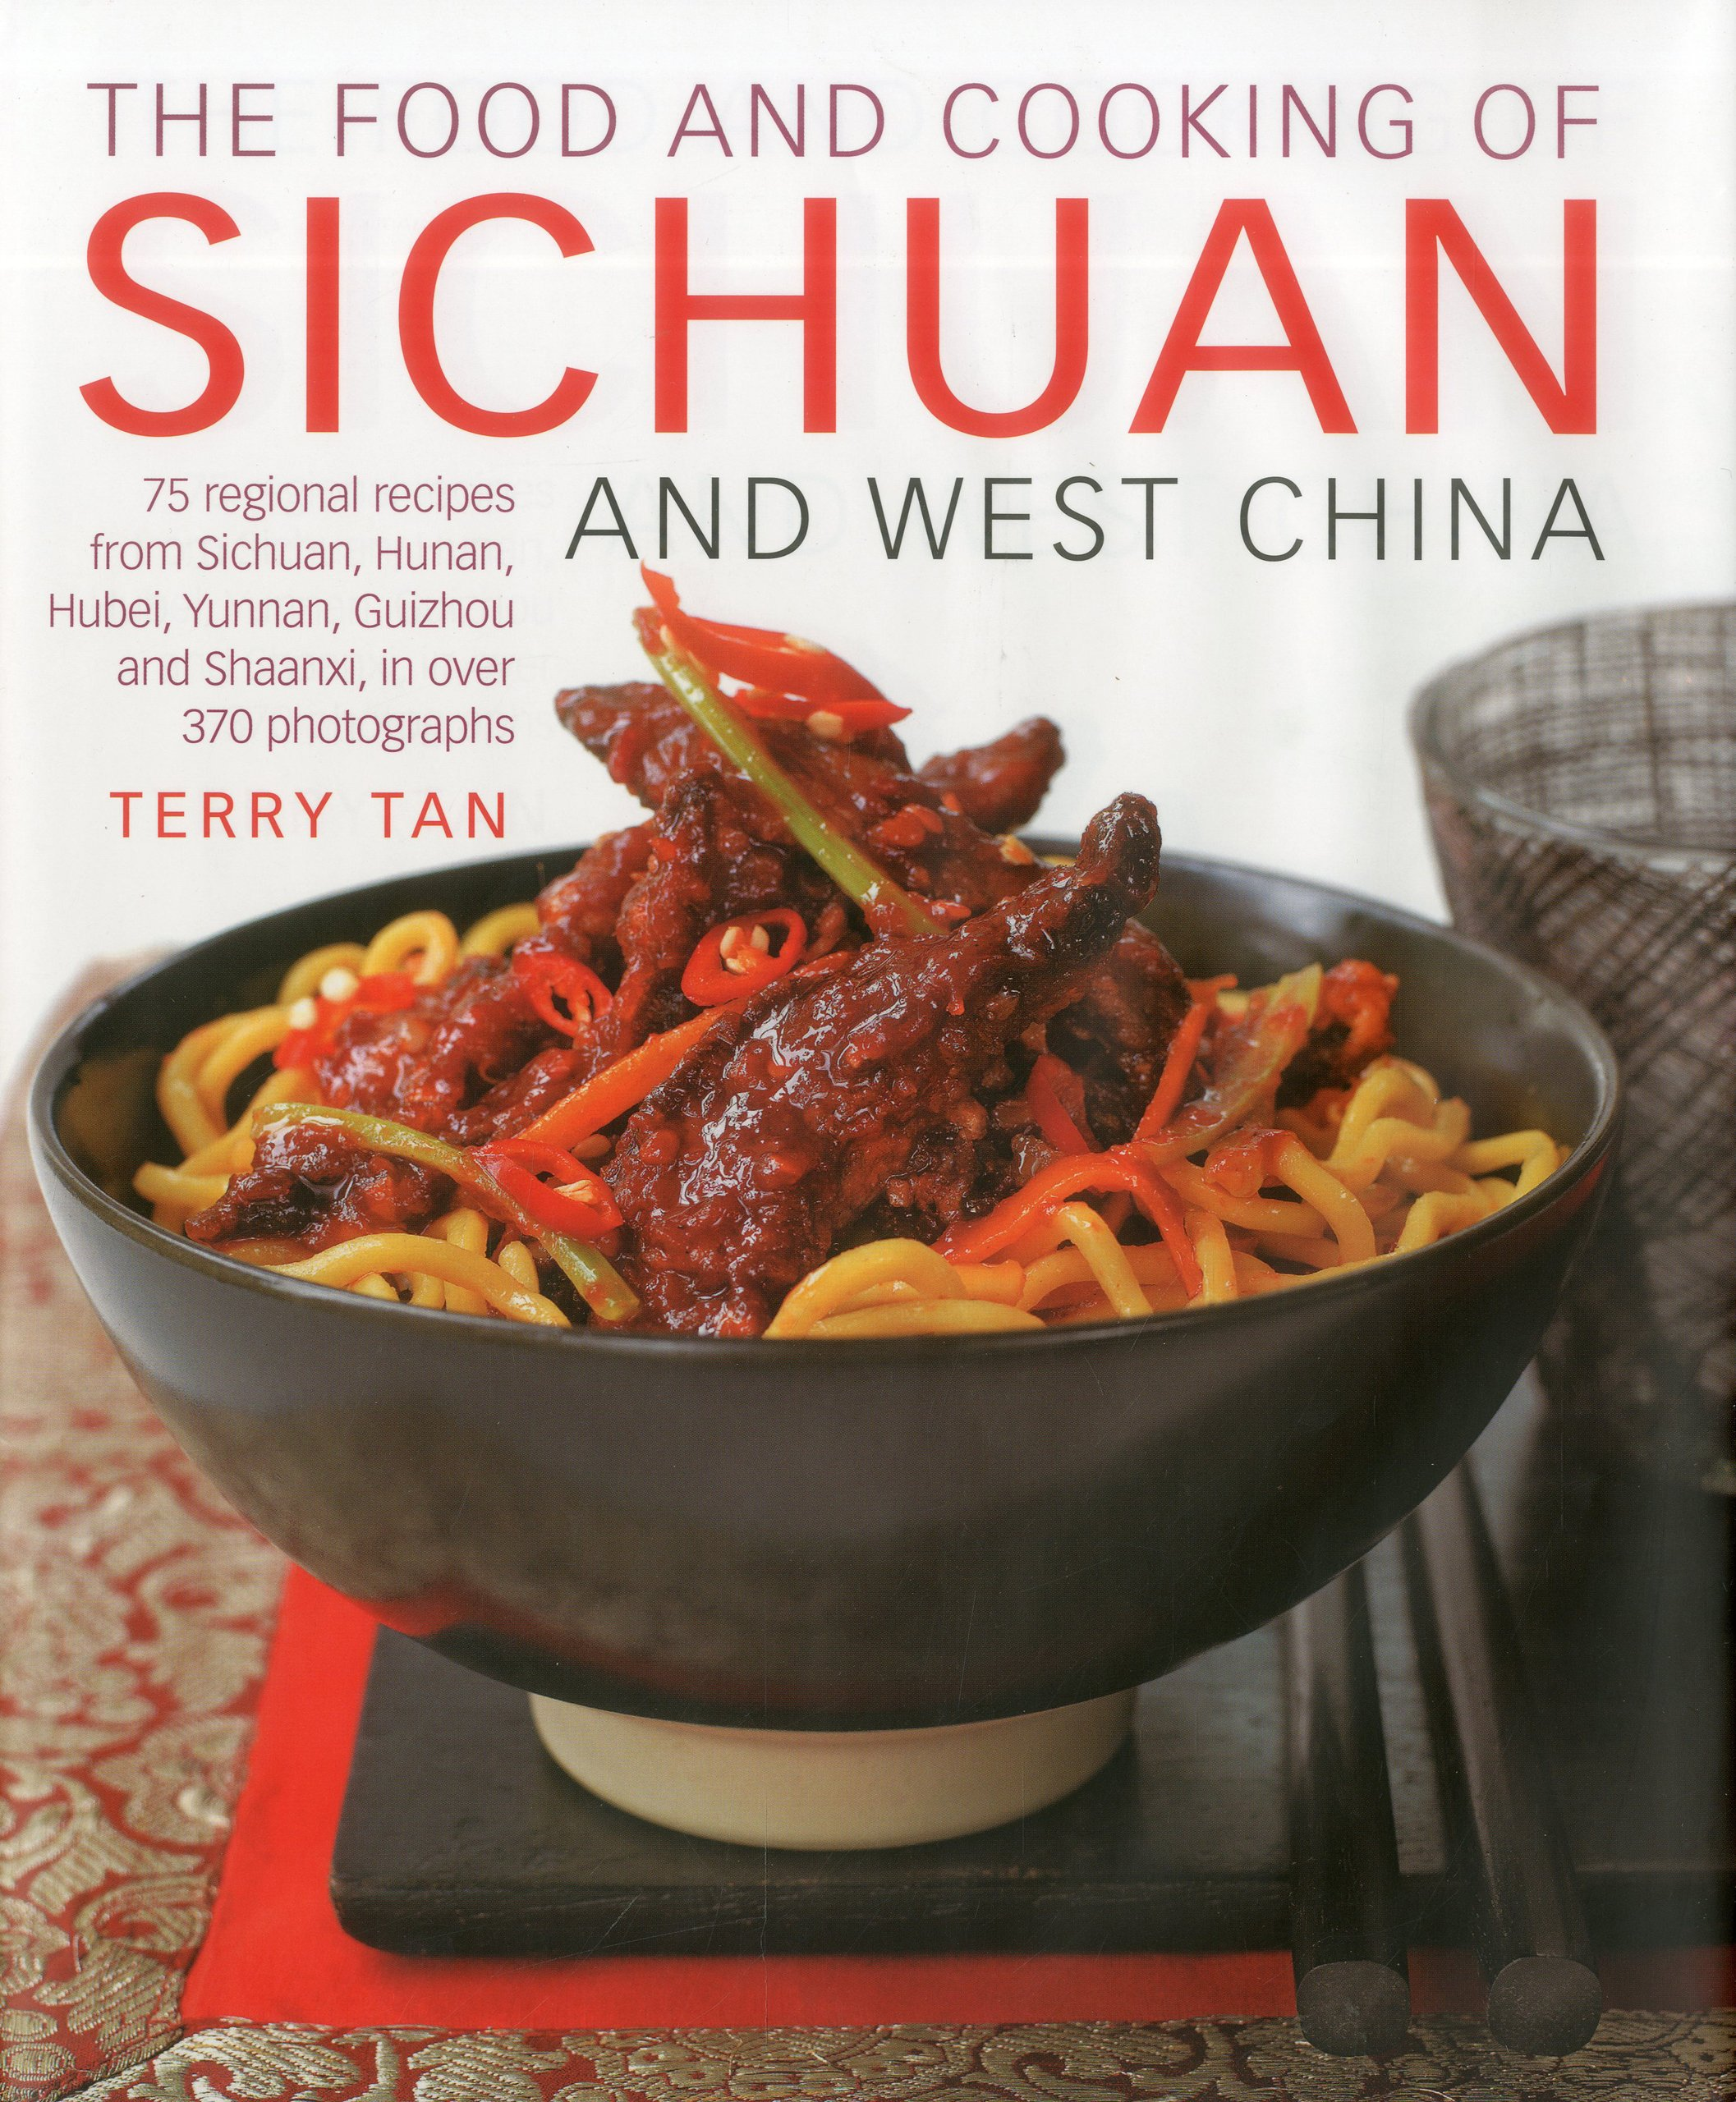 The food and cooking of sichuan and west china 75 regional recipes the food and cooking of sichuan and west china 75 regional recipes from sichuan hunan hubei yunnan guizhou and shaanxi in over 370 photographs terry forumfinder Choice Image